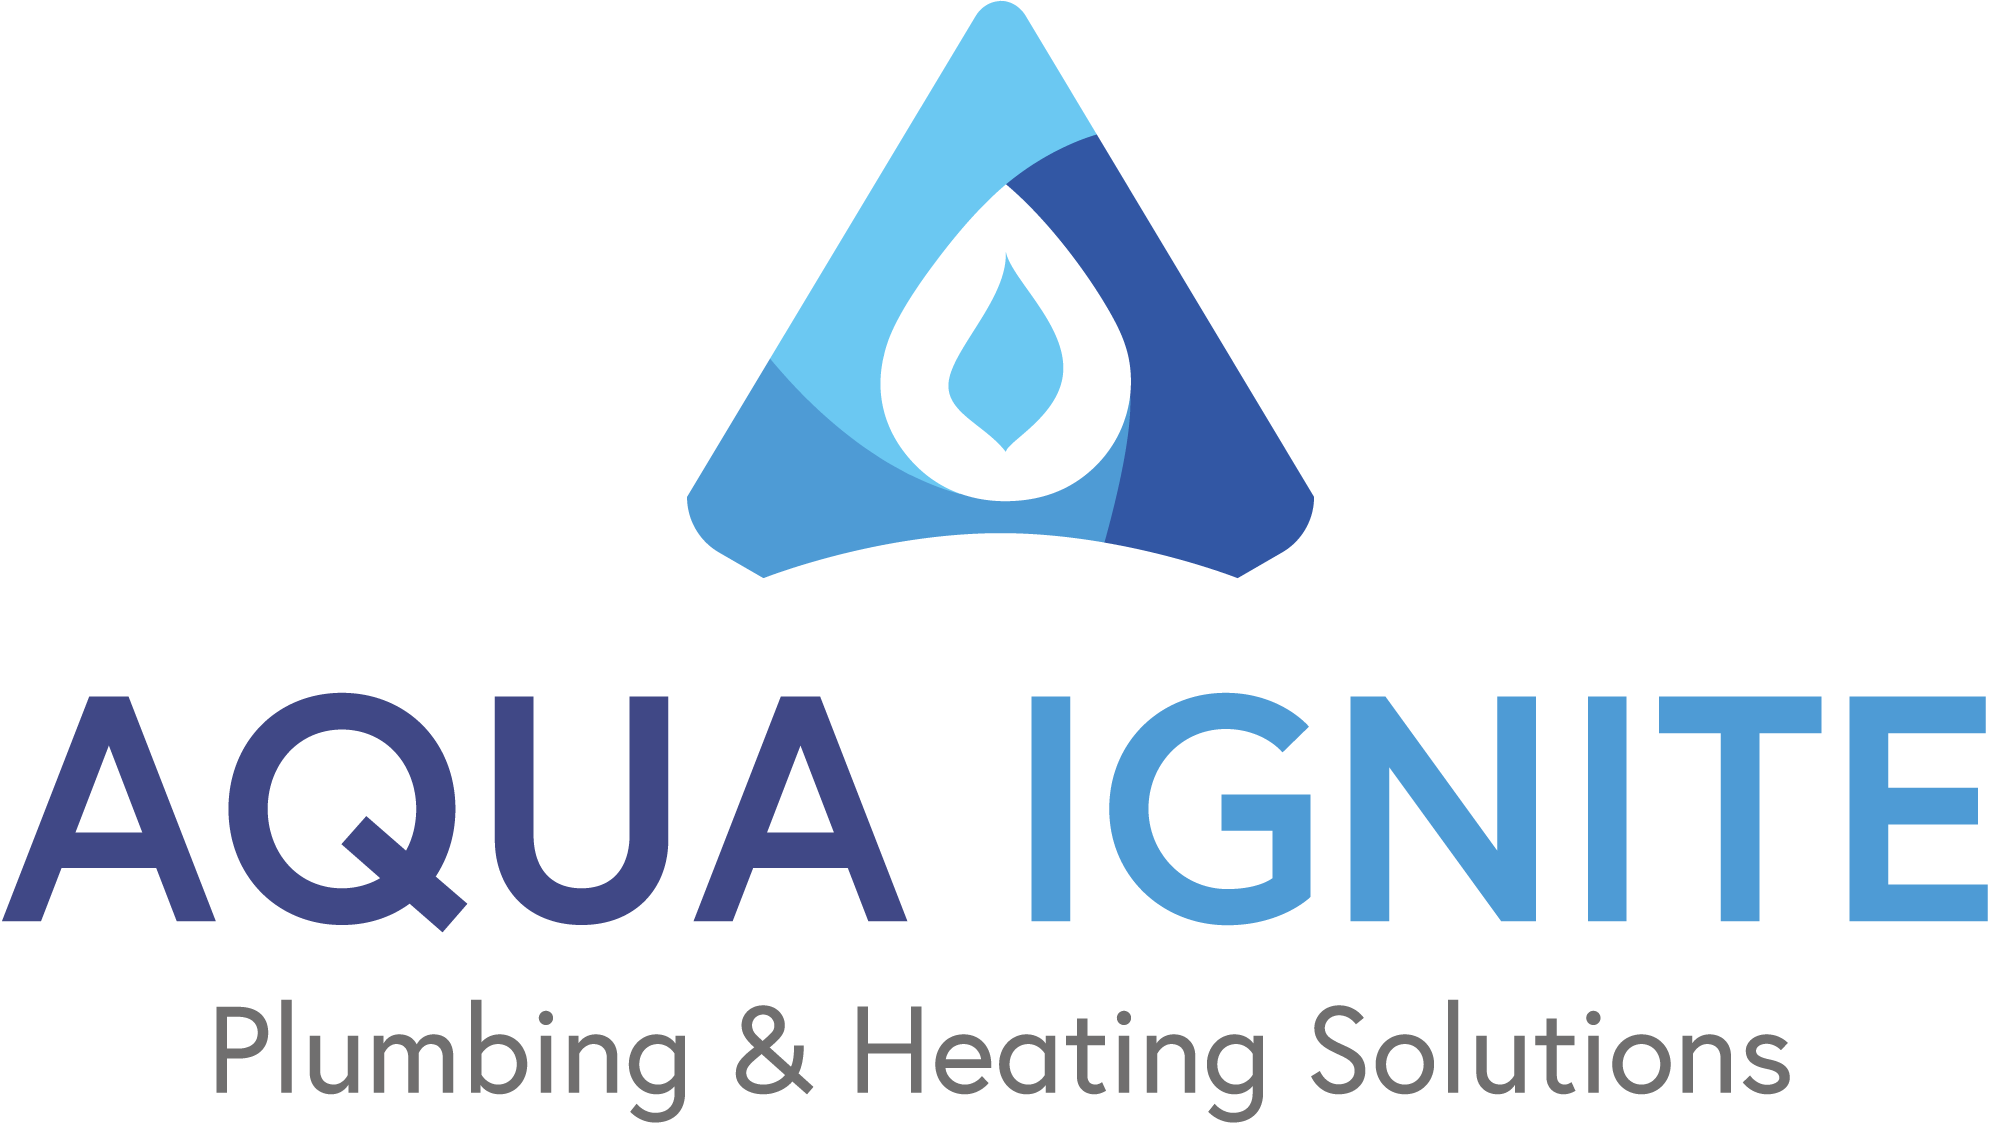 Aqua Ignite Plumbing and Heating Solutions - Logo